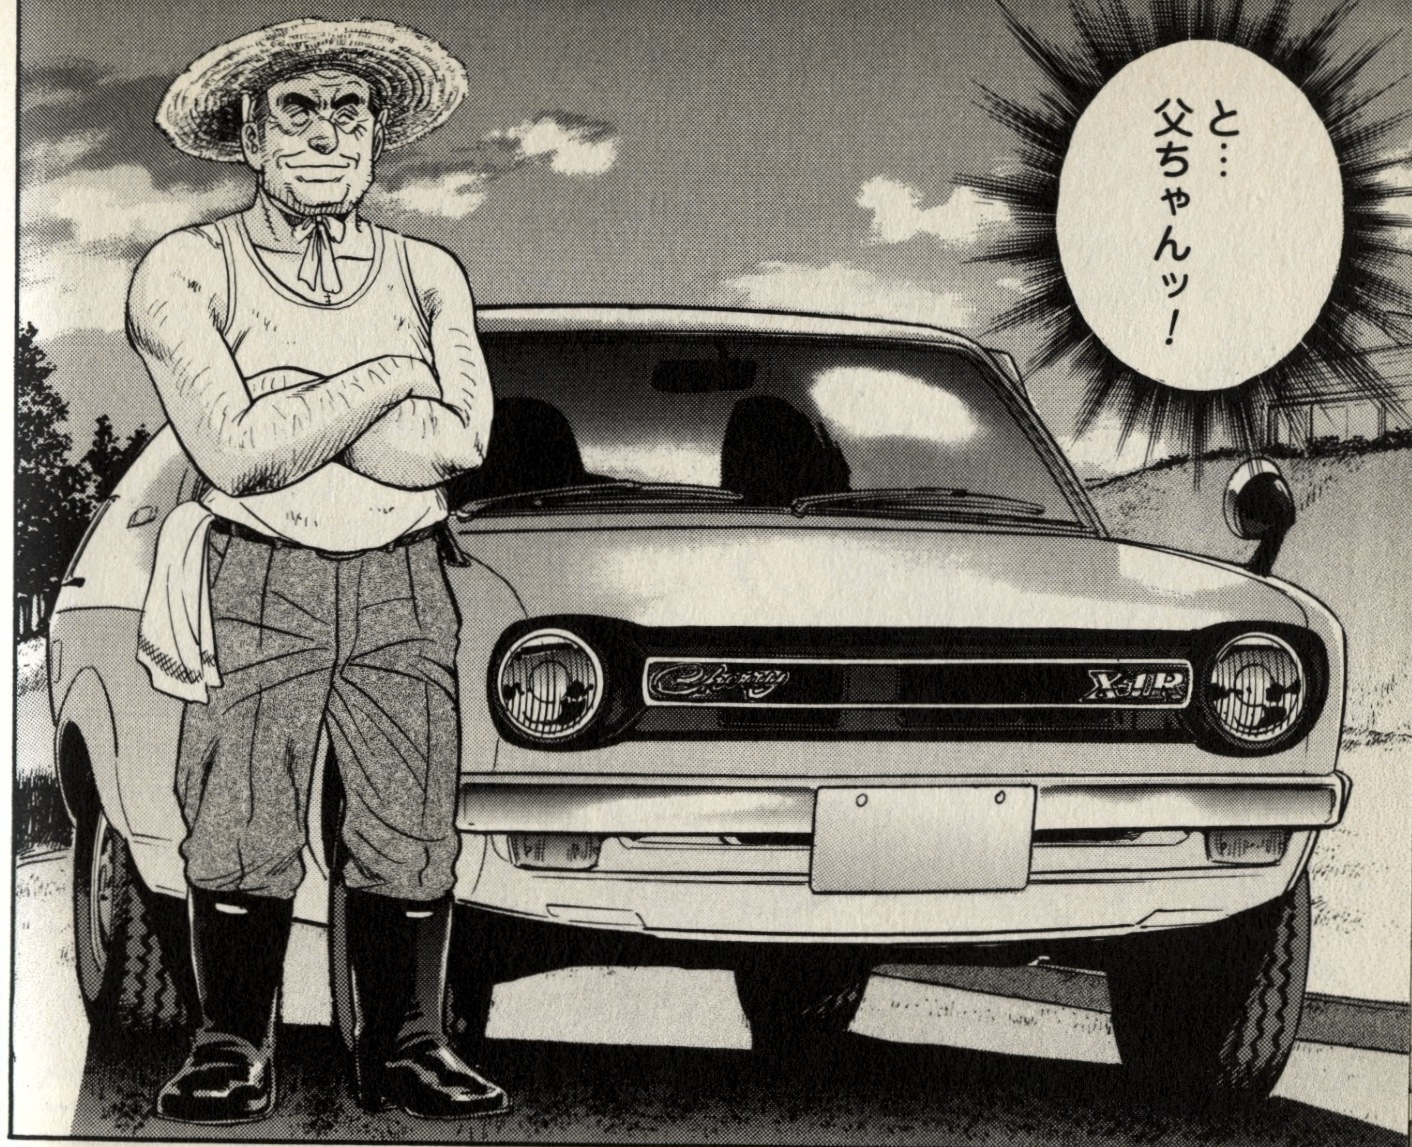 Dads Nissan Cherry X-1R coupe